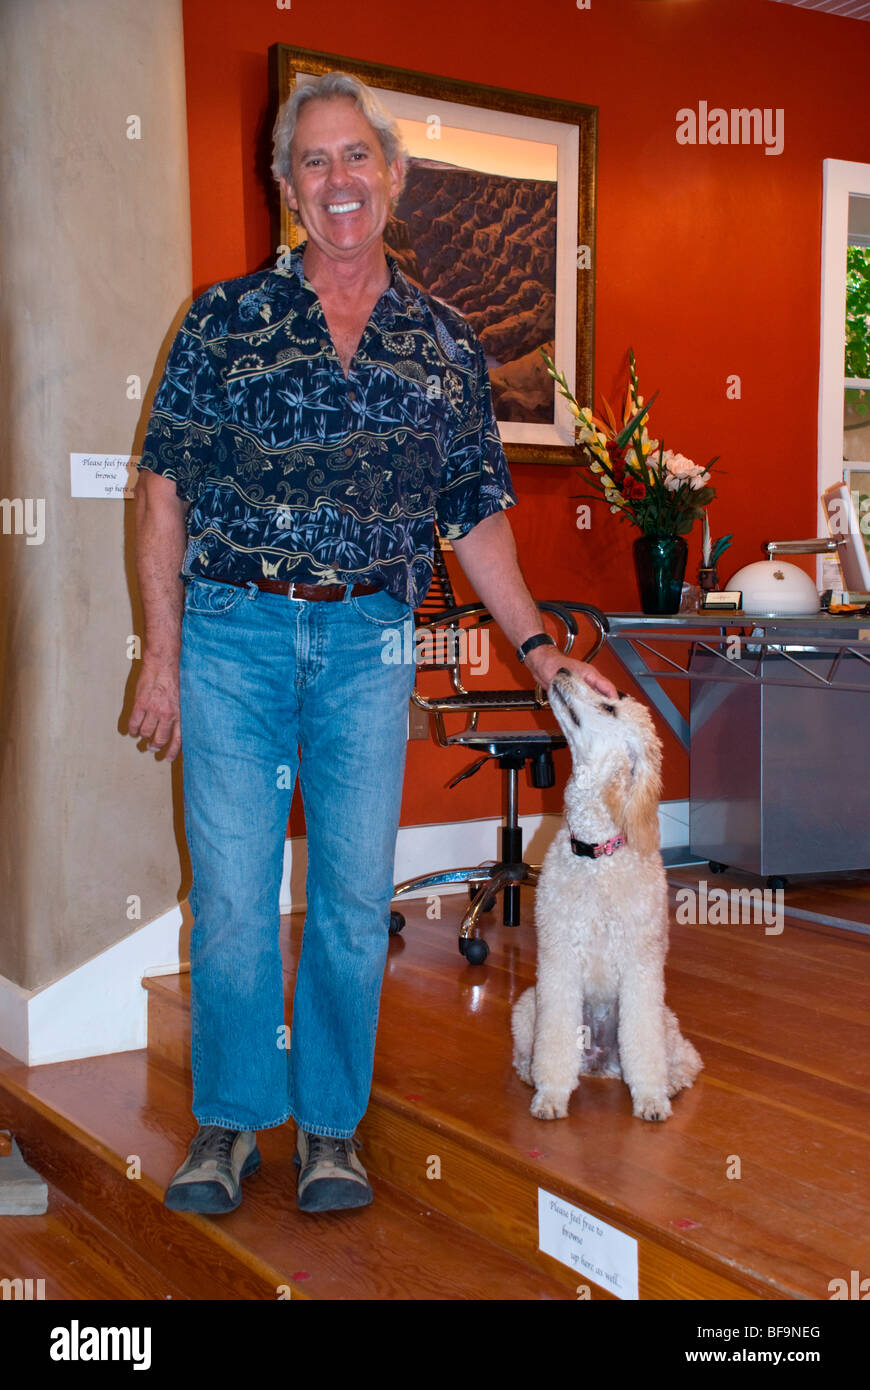 Artist Doug West and his dog invite potential customers into his gallery in Arroyo Seco, just north of Taos, New - Stock Image